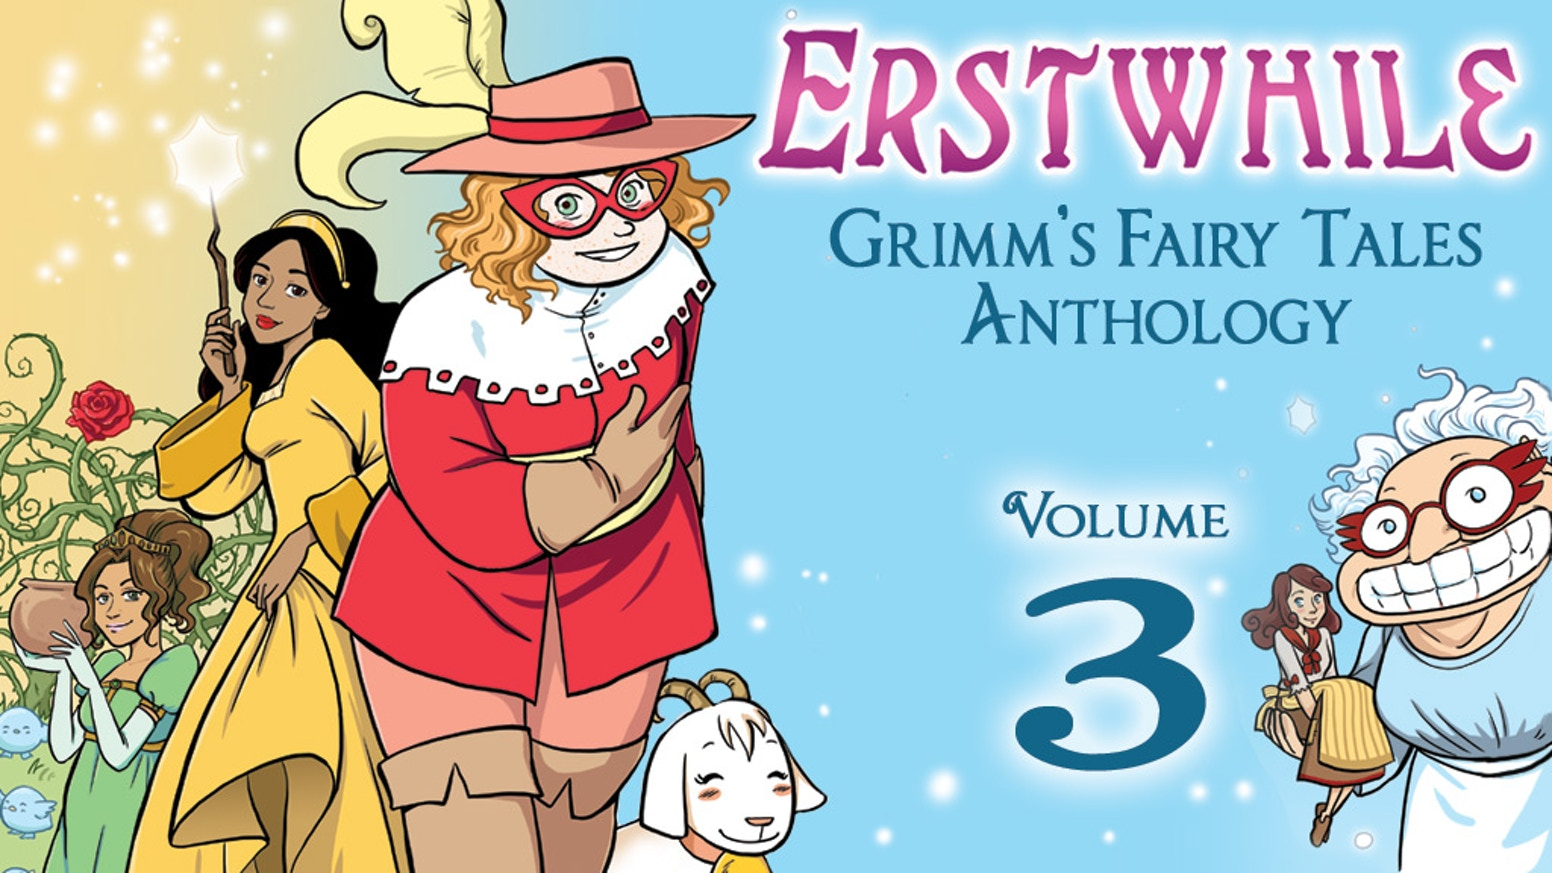 A comics anthology by three female creators that will transport your inner child to a vivid world of fairy tales.